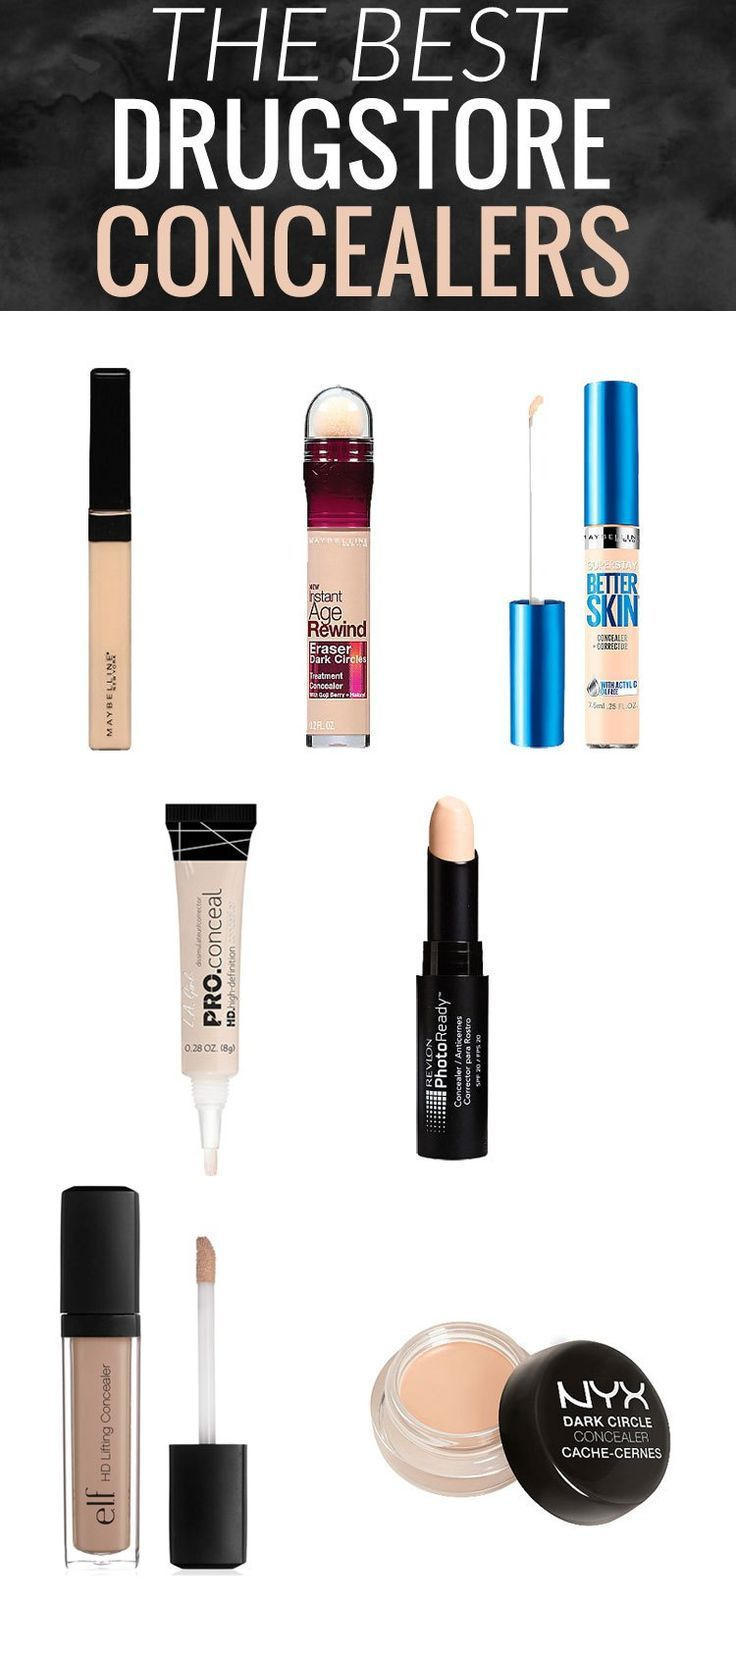 these 7 best drugstore concealers have got you covered - from under eye darkness to blemishes